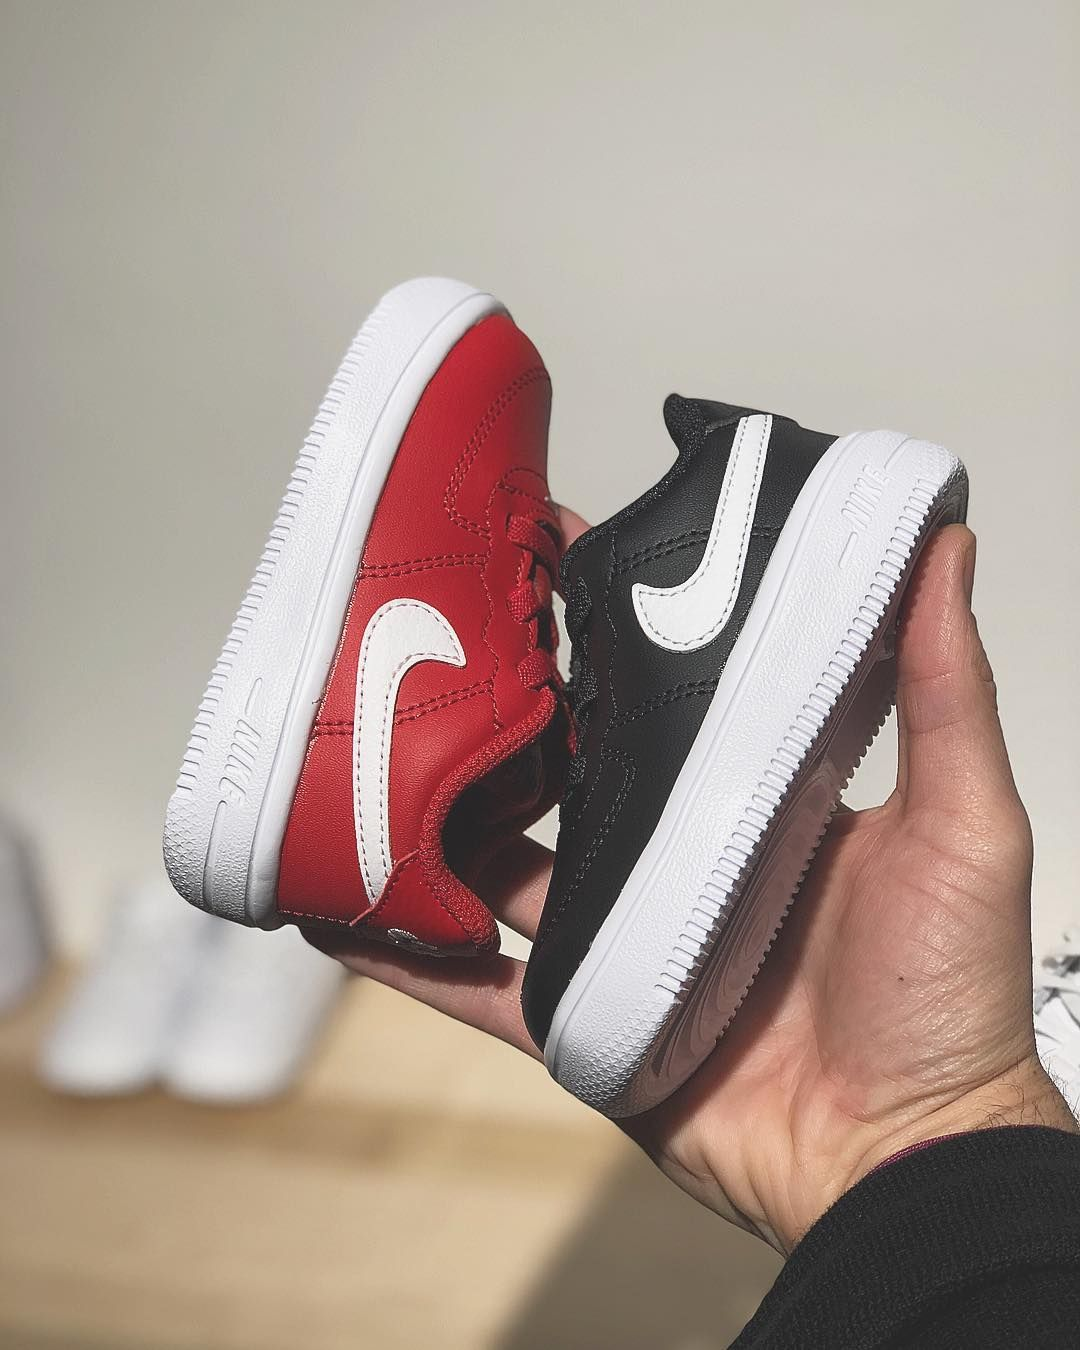 Pin on KIDS SNEAKERS AND SHOES SLAY